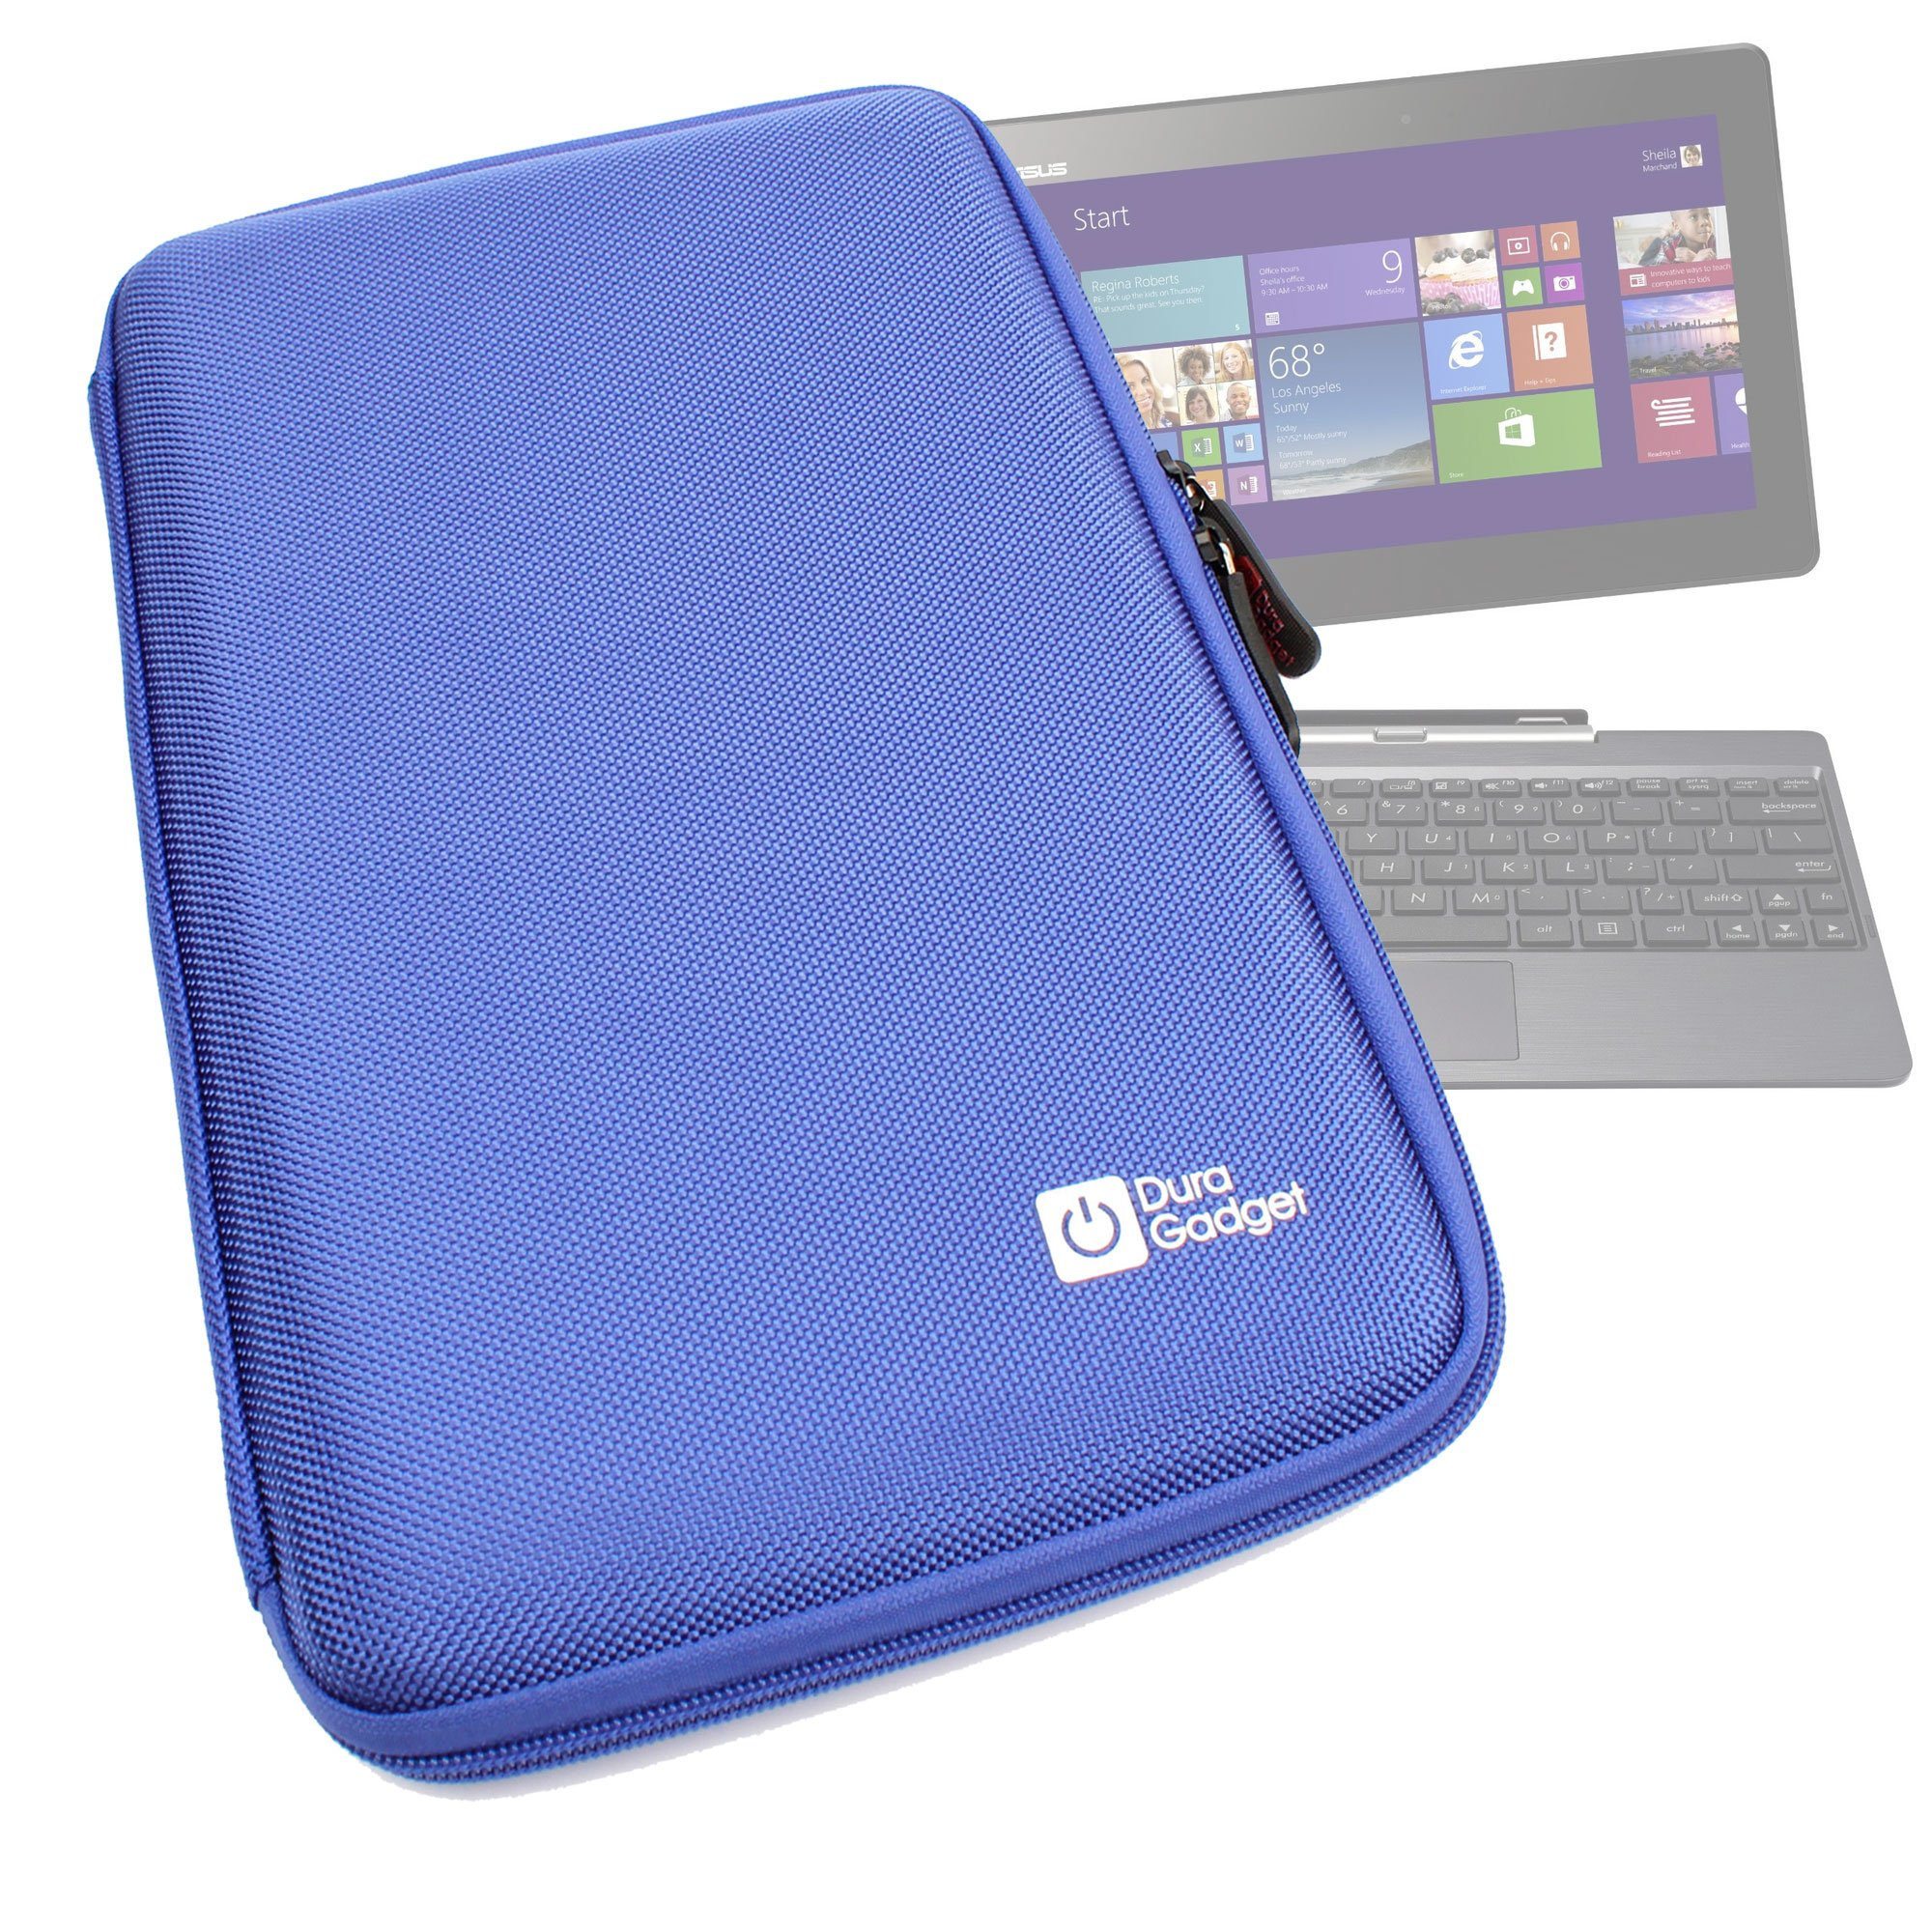 New DURAGADGET Brilliantly Resilient Hard Shell Case Cover Sleeve With Internal Ergonomic Designed Net Accessories Pouch In Vibrant BLUE COLOUR For Asus Transformer Book T100TA, Asus MEMO PAD 10, Asus Transformer Pad TF701T, Transformer Infinity & Transfo by DURAGADGET (Image #1)